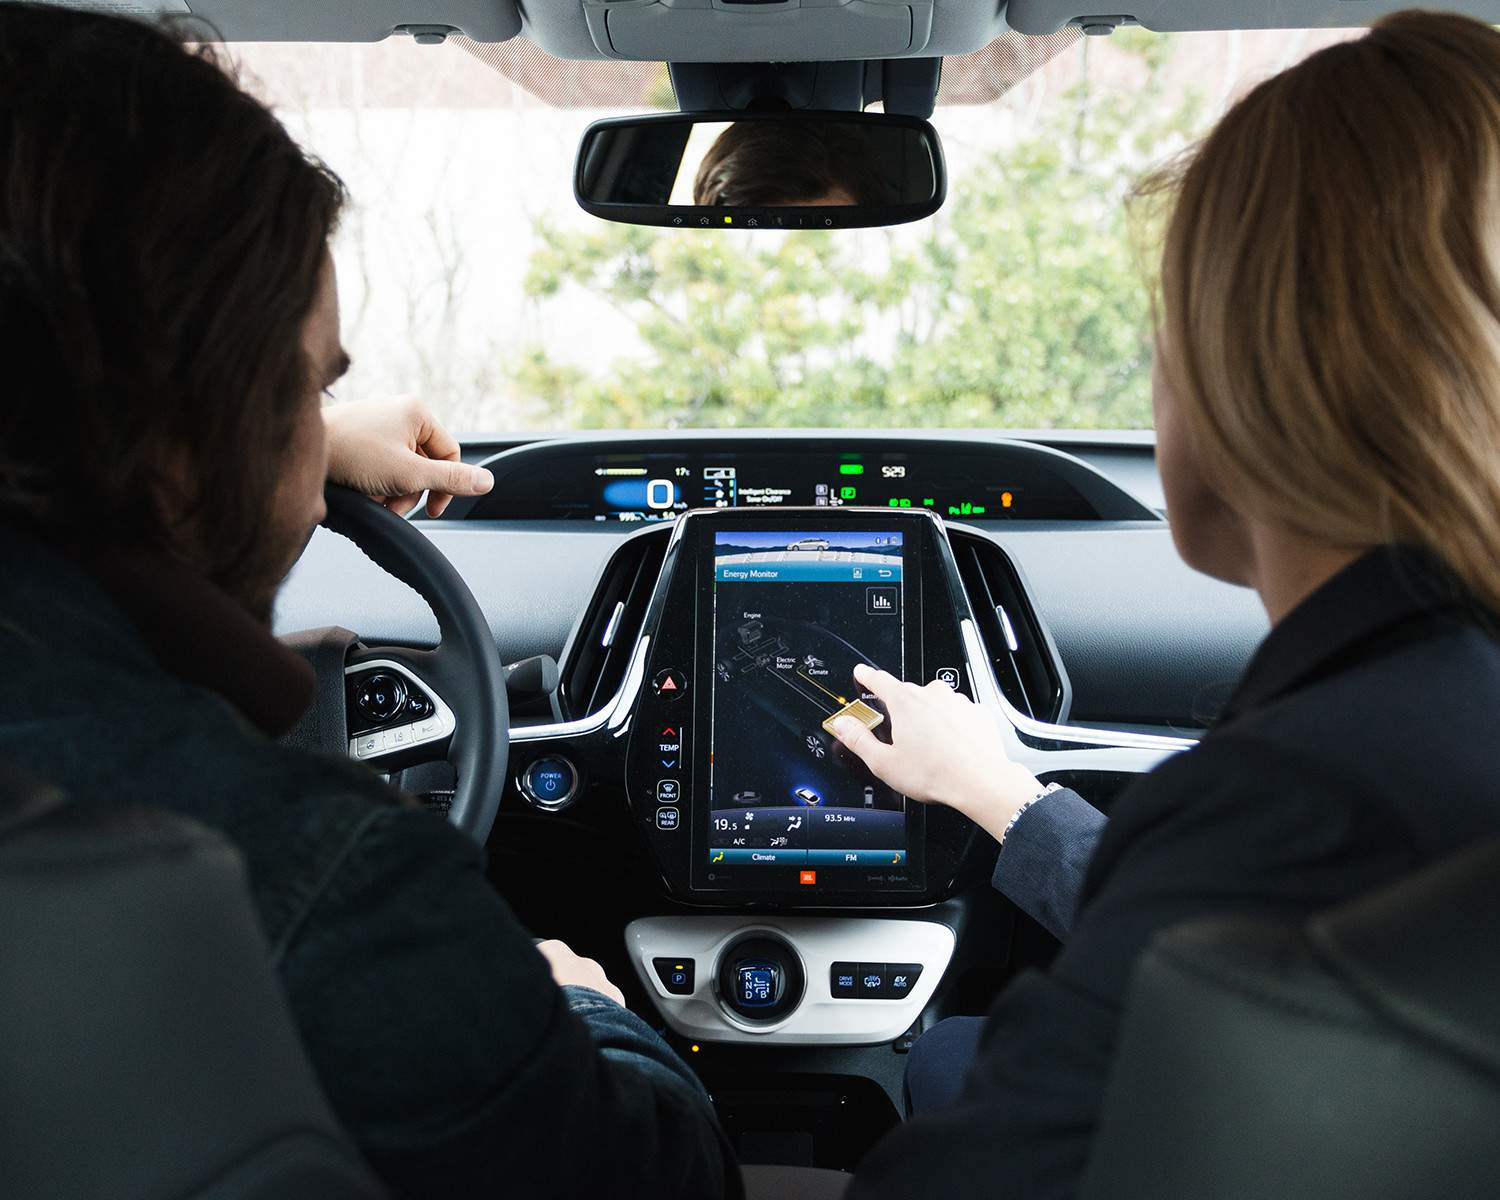 Two people navigate through Toyota's Entune system on a large touchscreen display